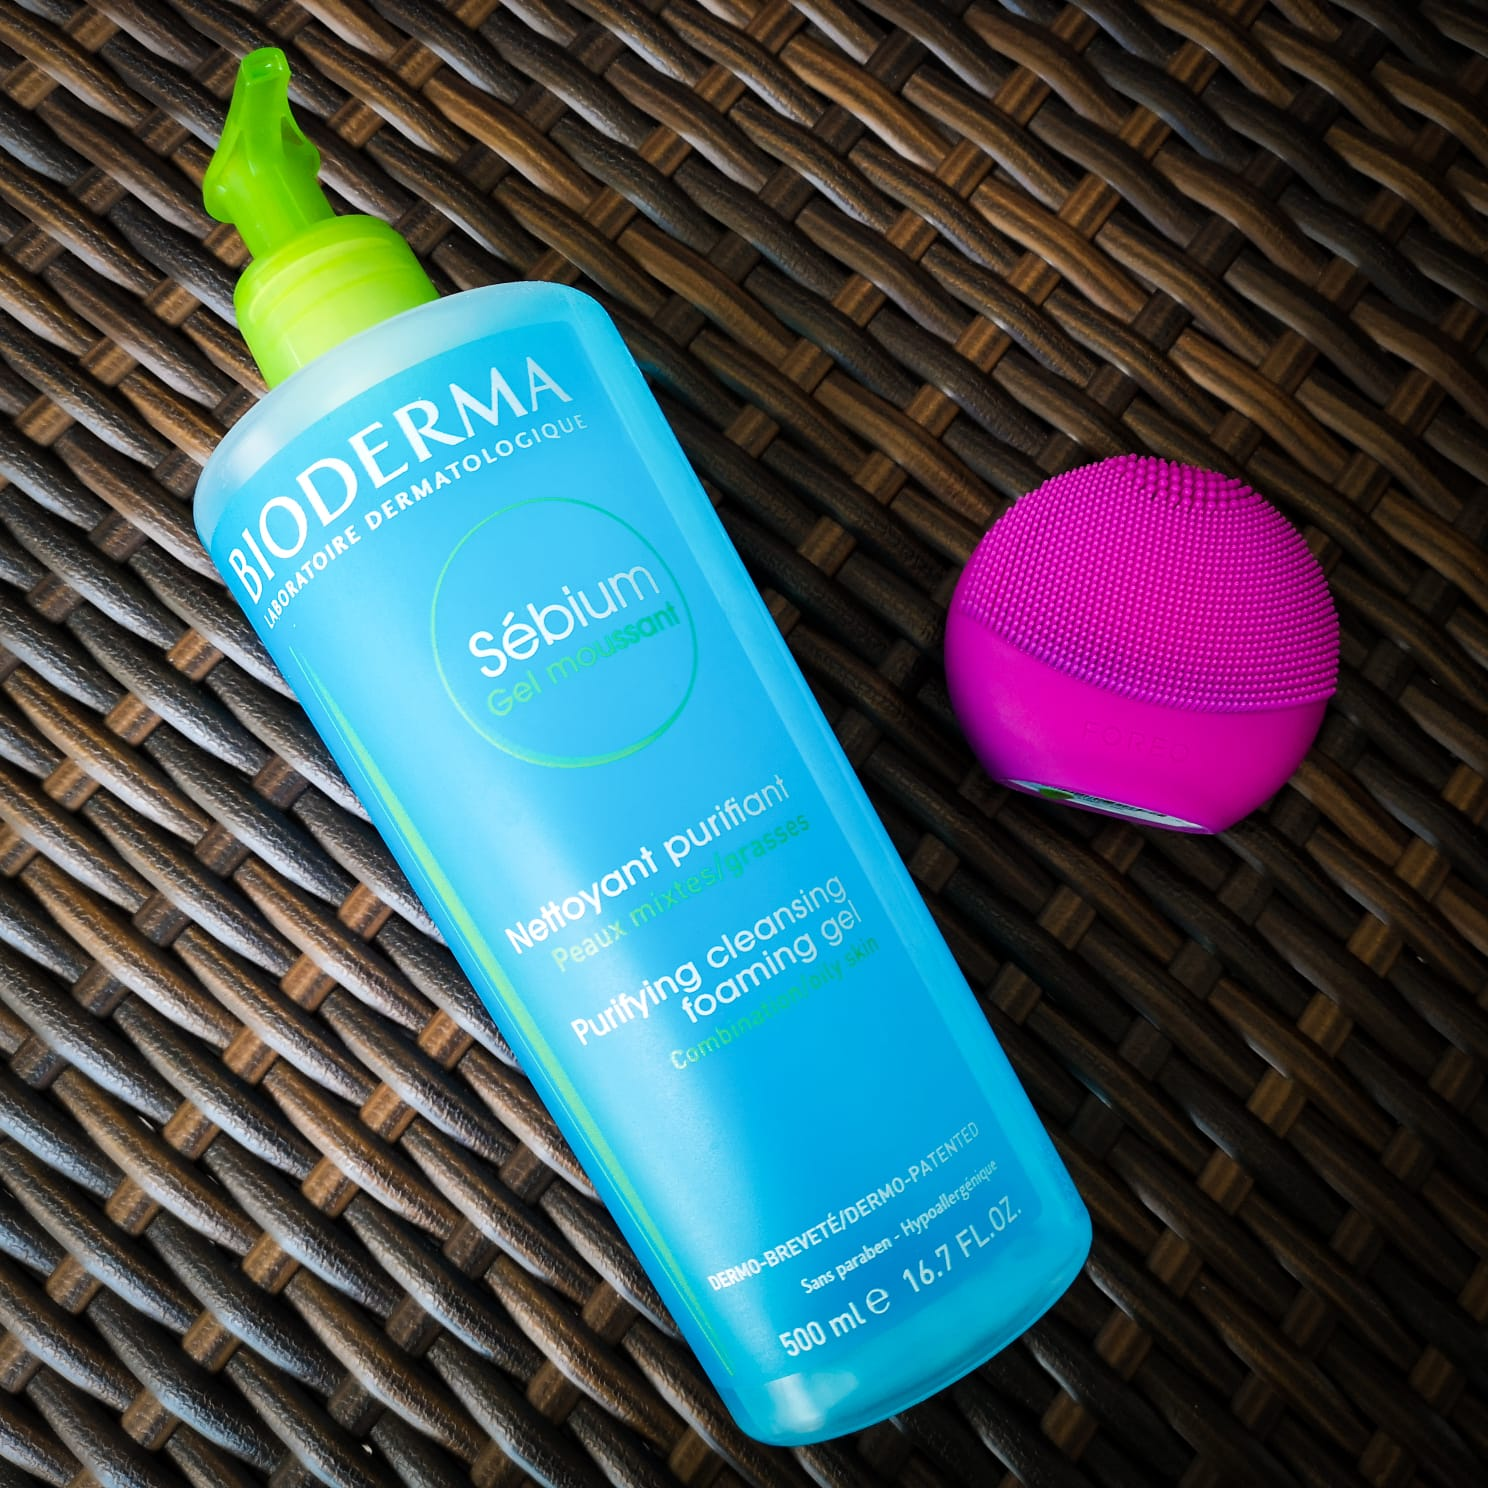 Review: Sebium Gel Moussant de la Bioderma